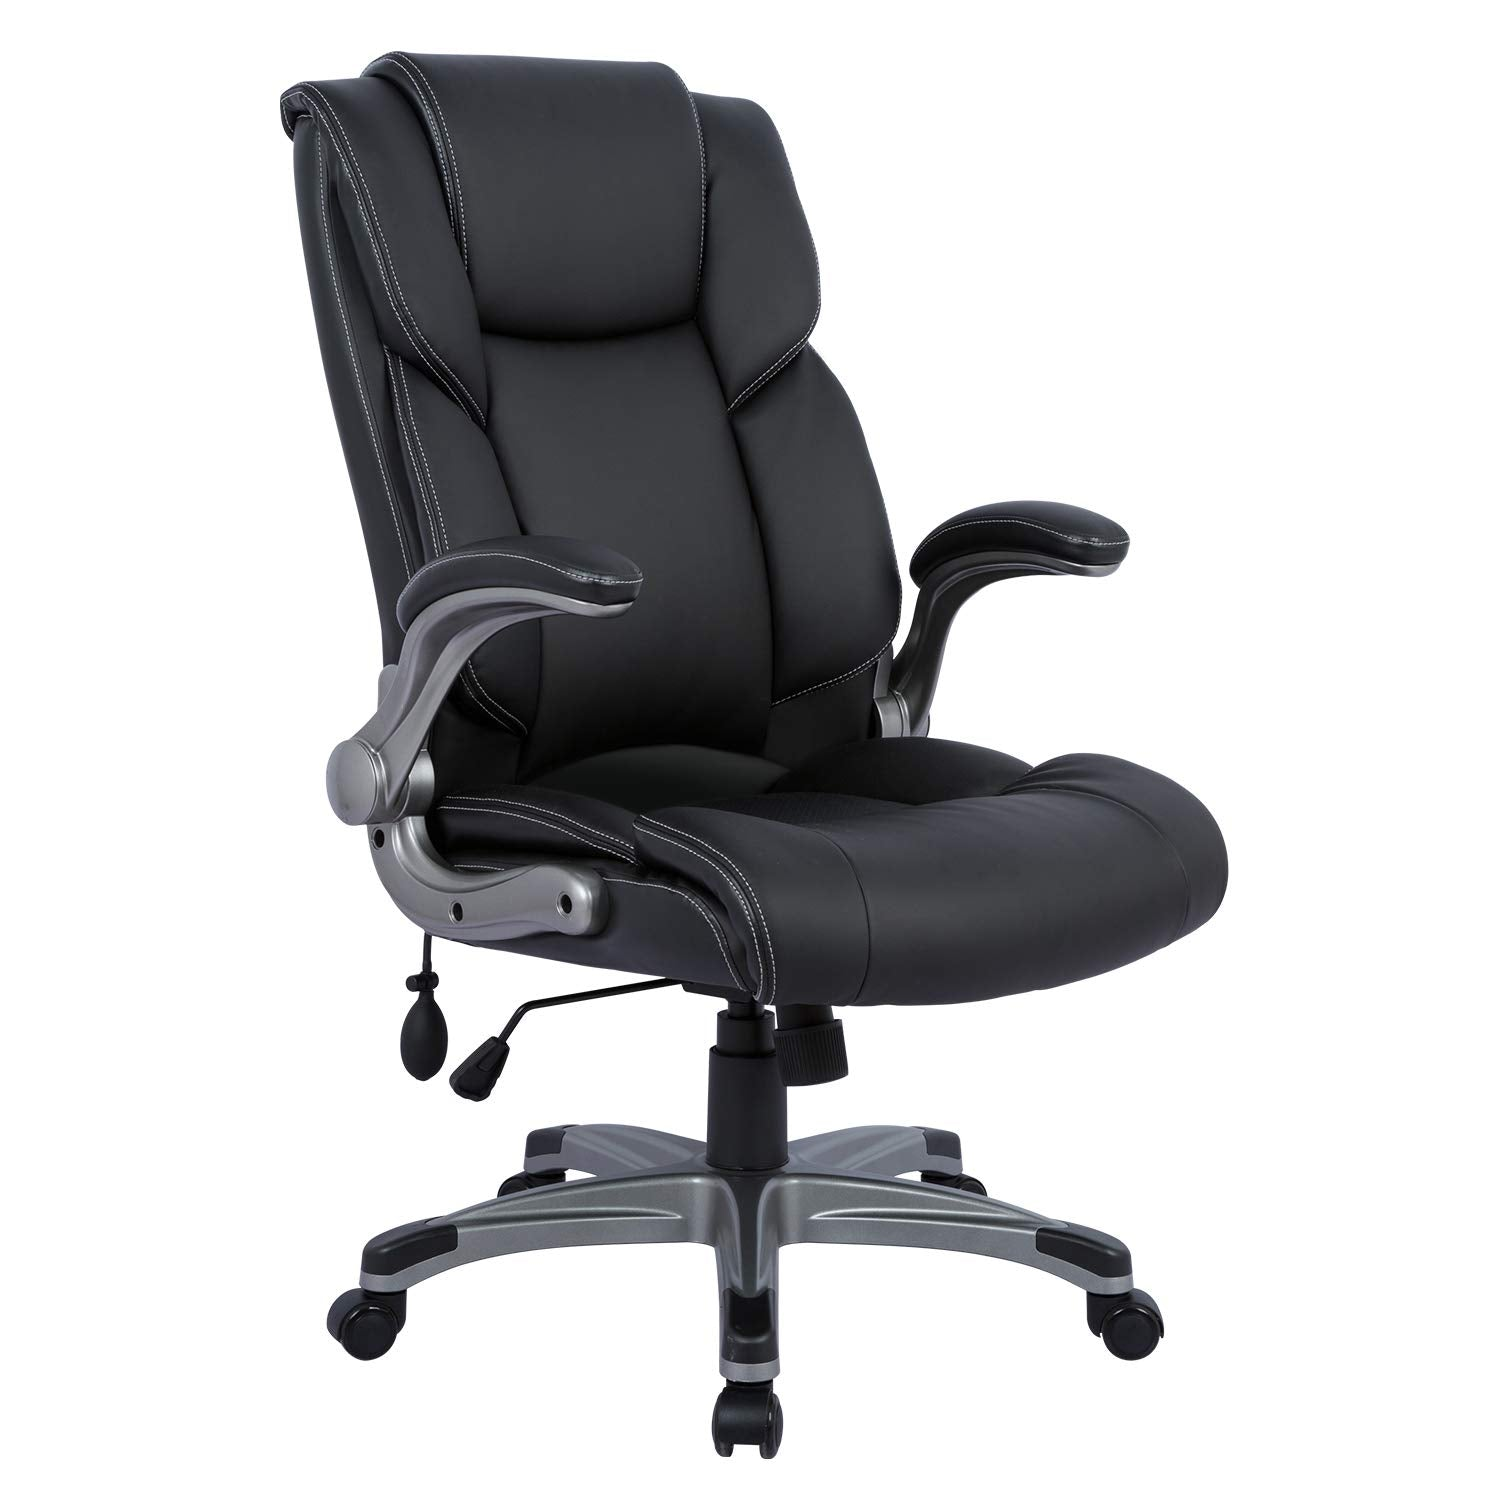 High Back Office Chair, Ergonomic Computer Desk Executive ,Adjustable Built in Lumbar Support, Tilt Angle and Flip-Up Arms, 360 Degree Rotation